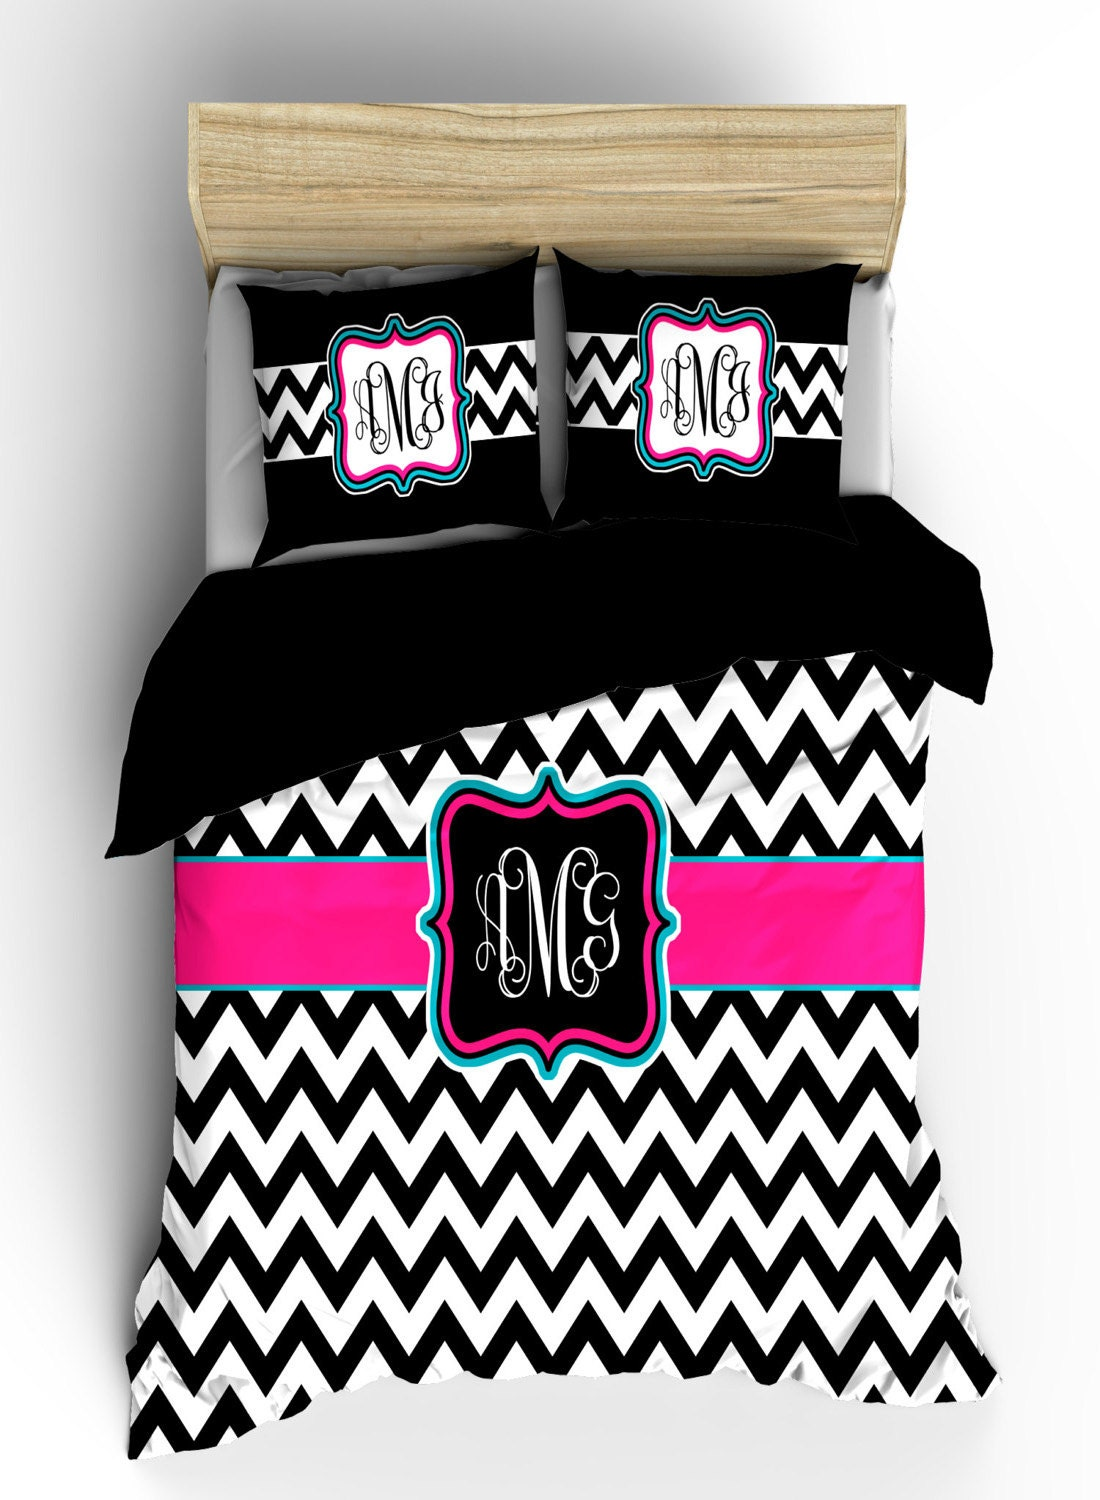 Personalized custom chevron bedding black and white by redbeauty